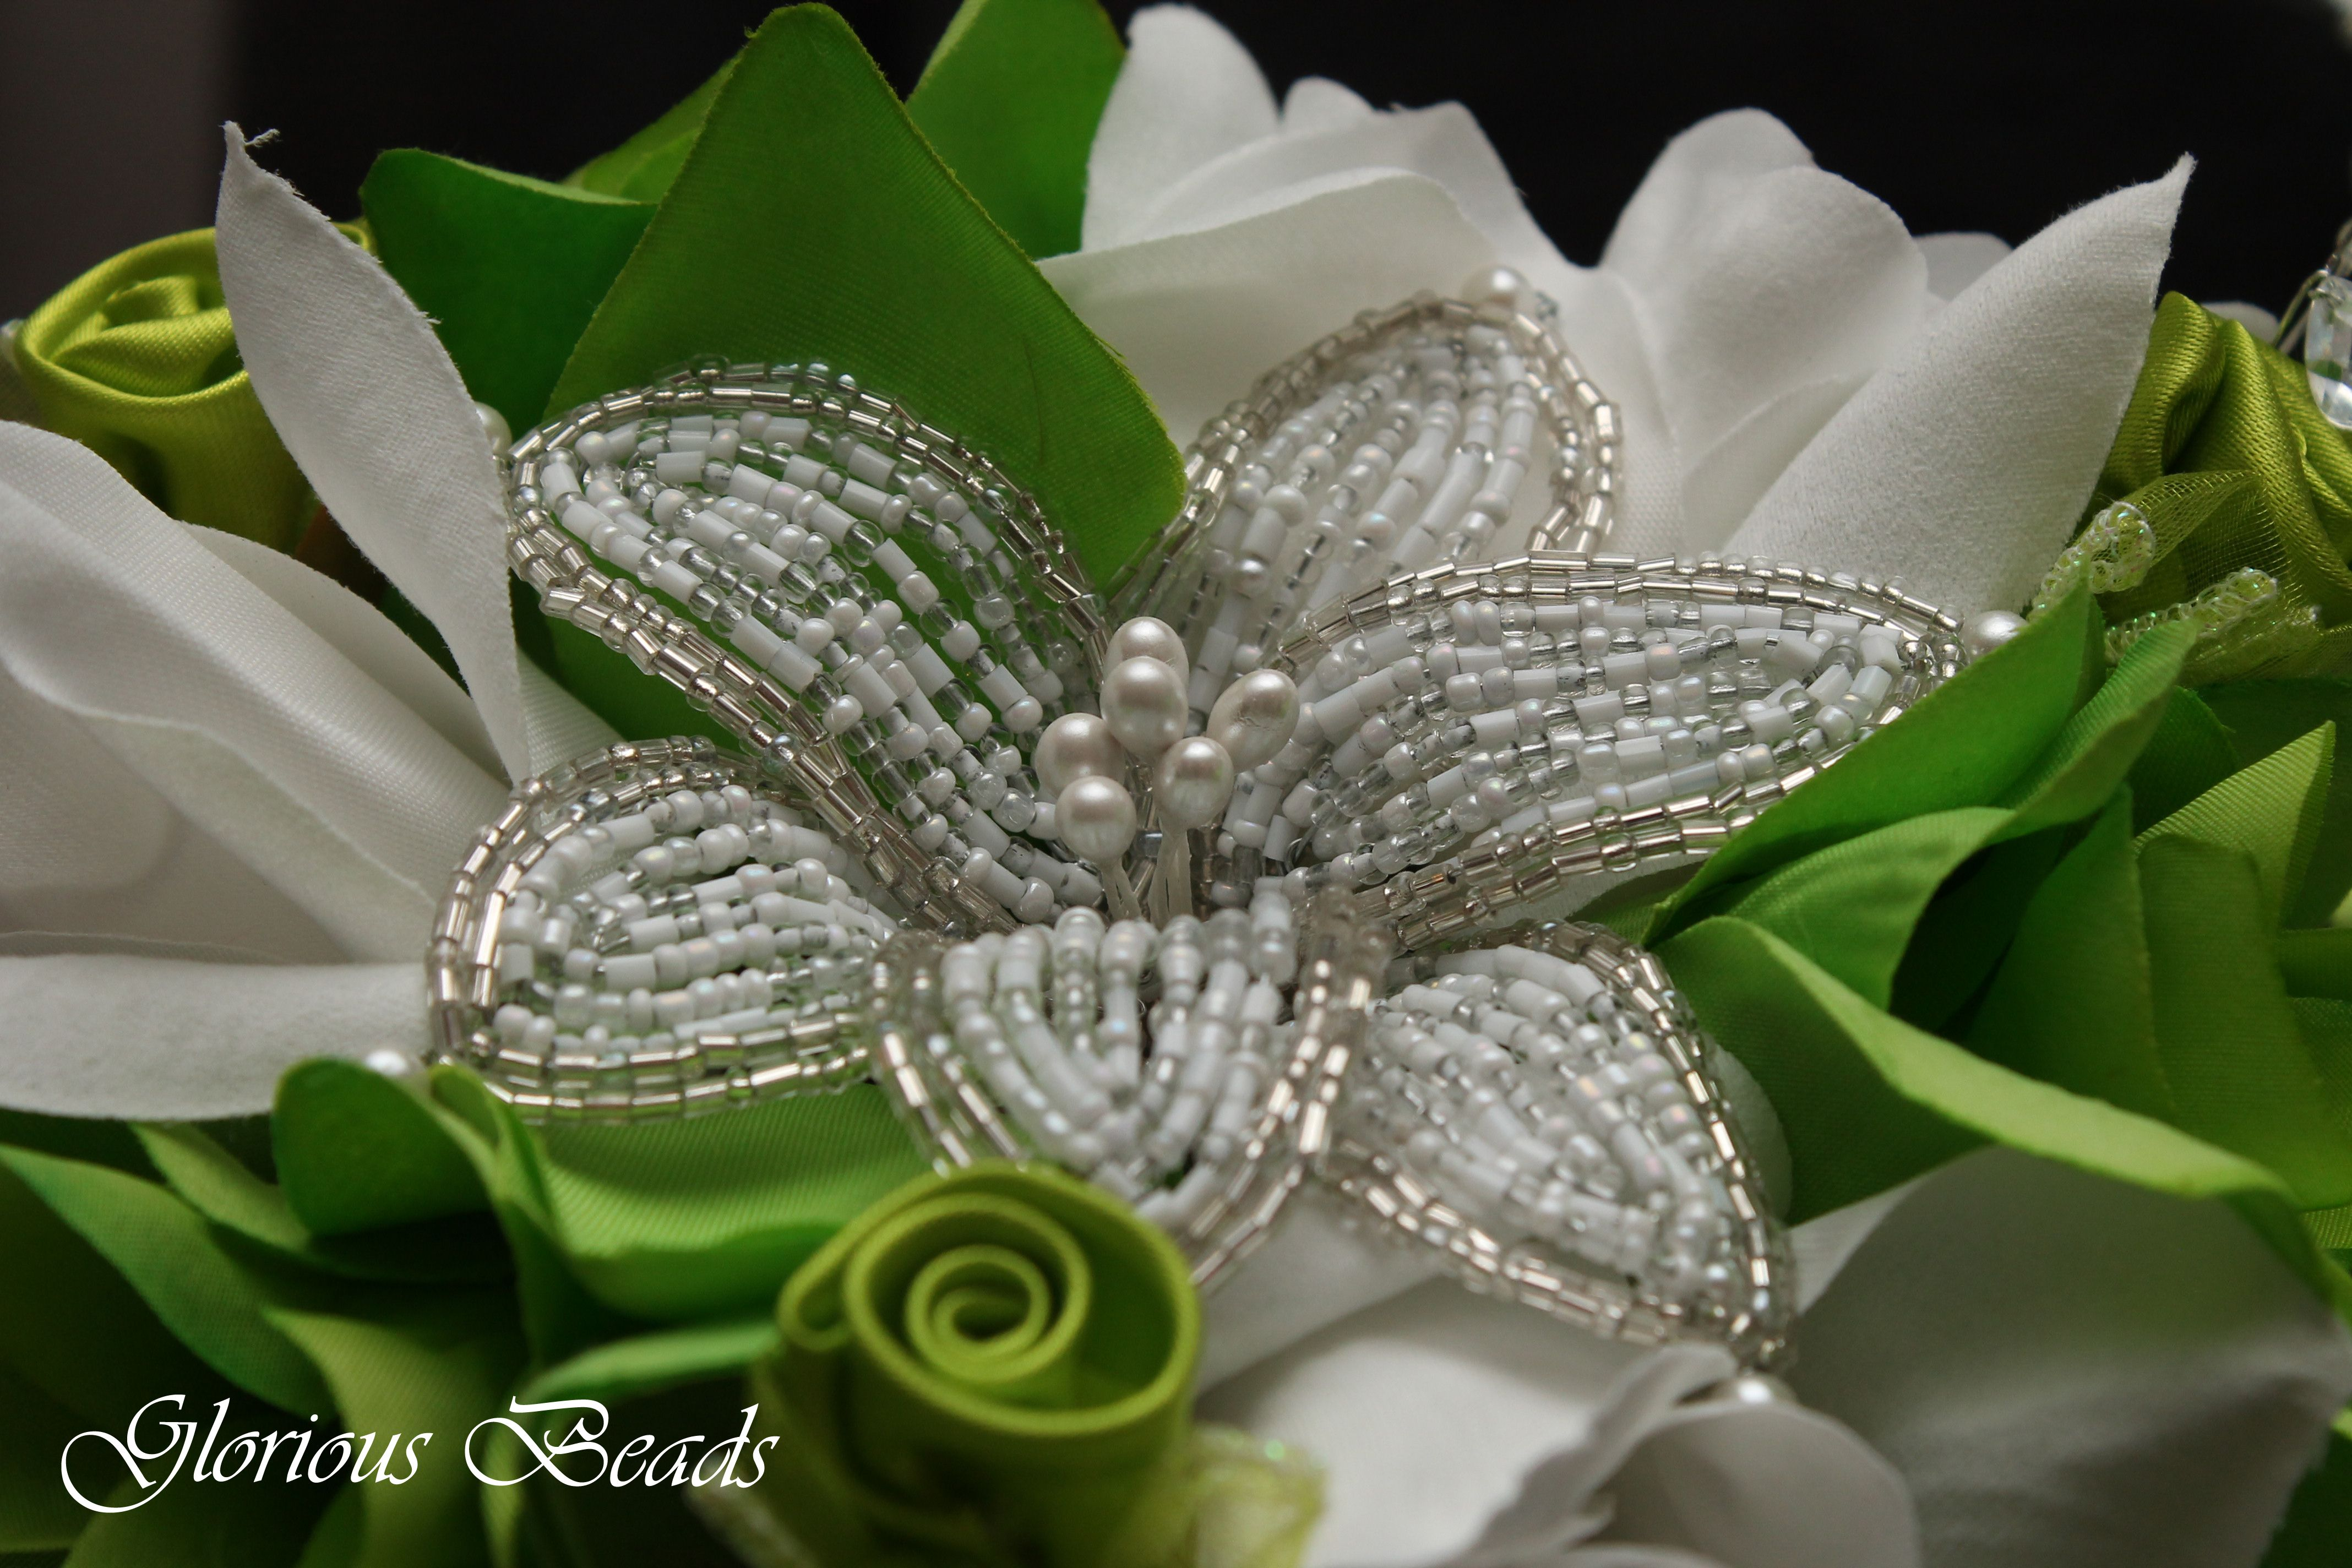 Handcrafted Beaded Lilies in Wedding Bouquets...  http://stores.ebay.com/Glorious-Beads-Wedding-Flowers